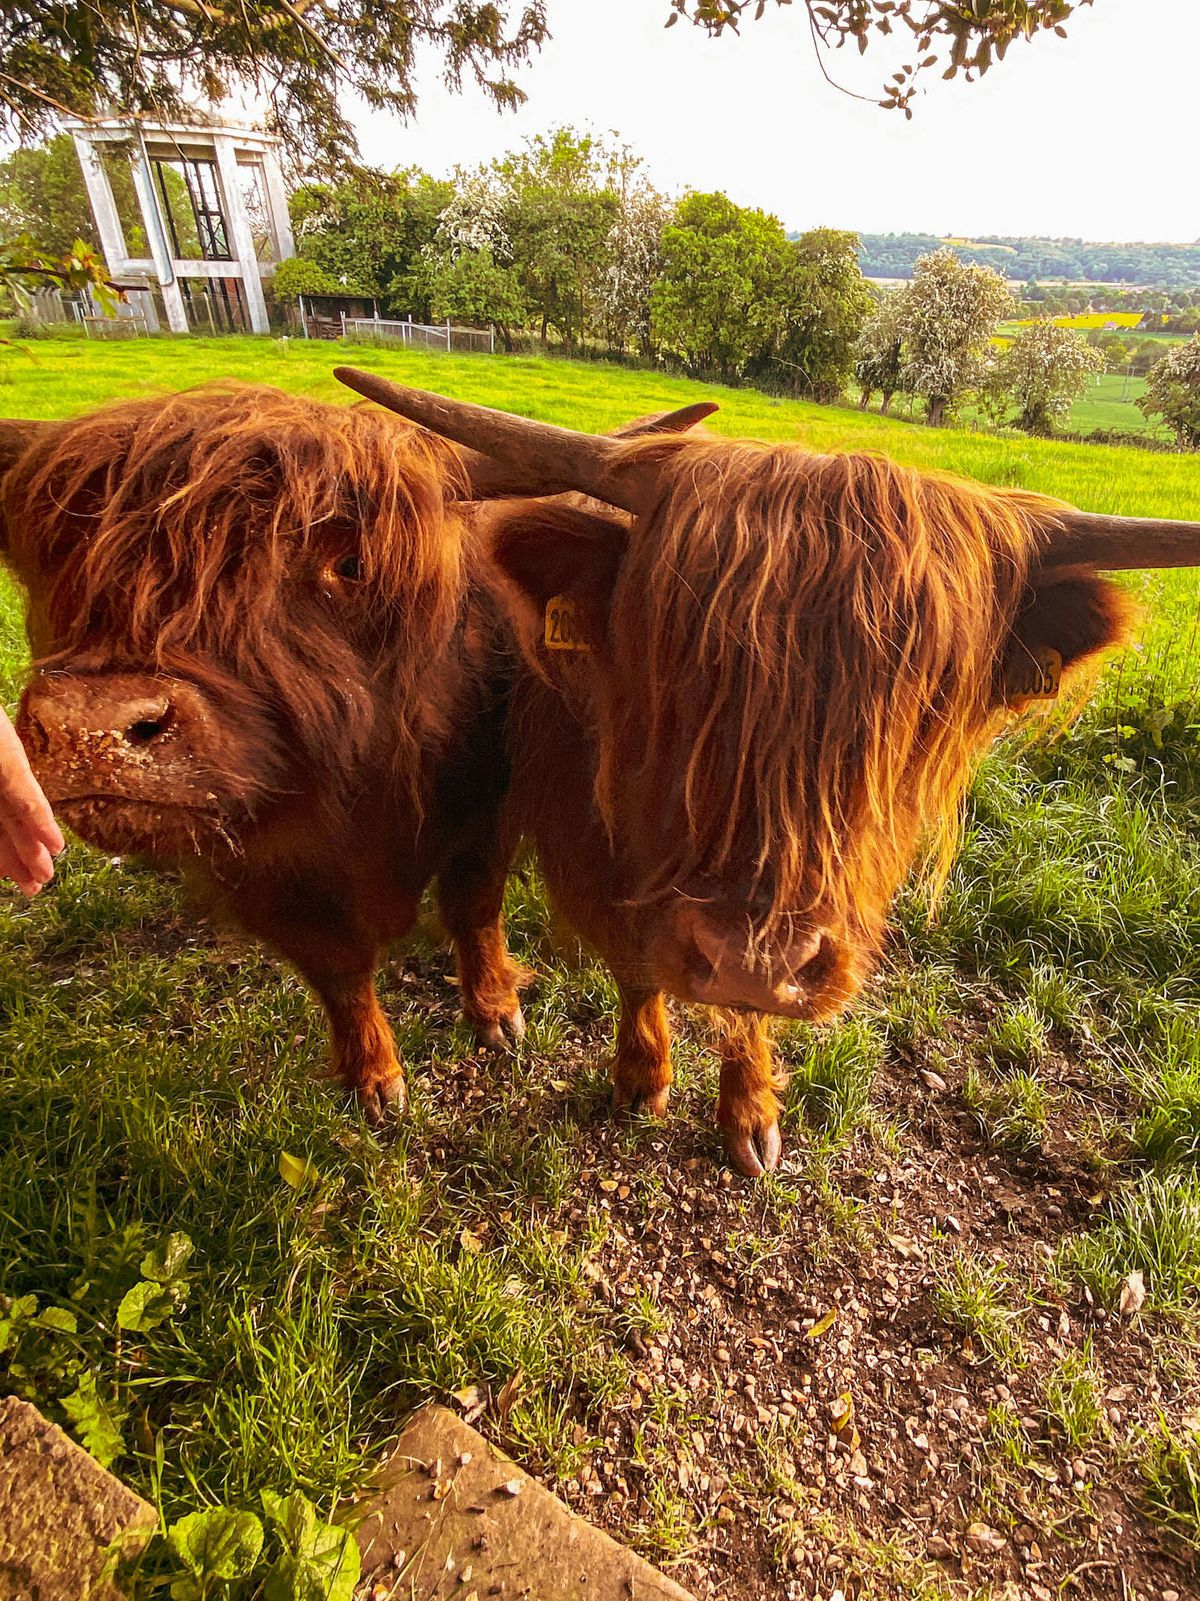 Friendly Highland cattle at Tasley, Bridgnorth. Photo by Adam Hirons posting as @ad_ventures85 on Instagram.